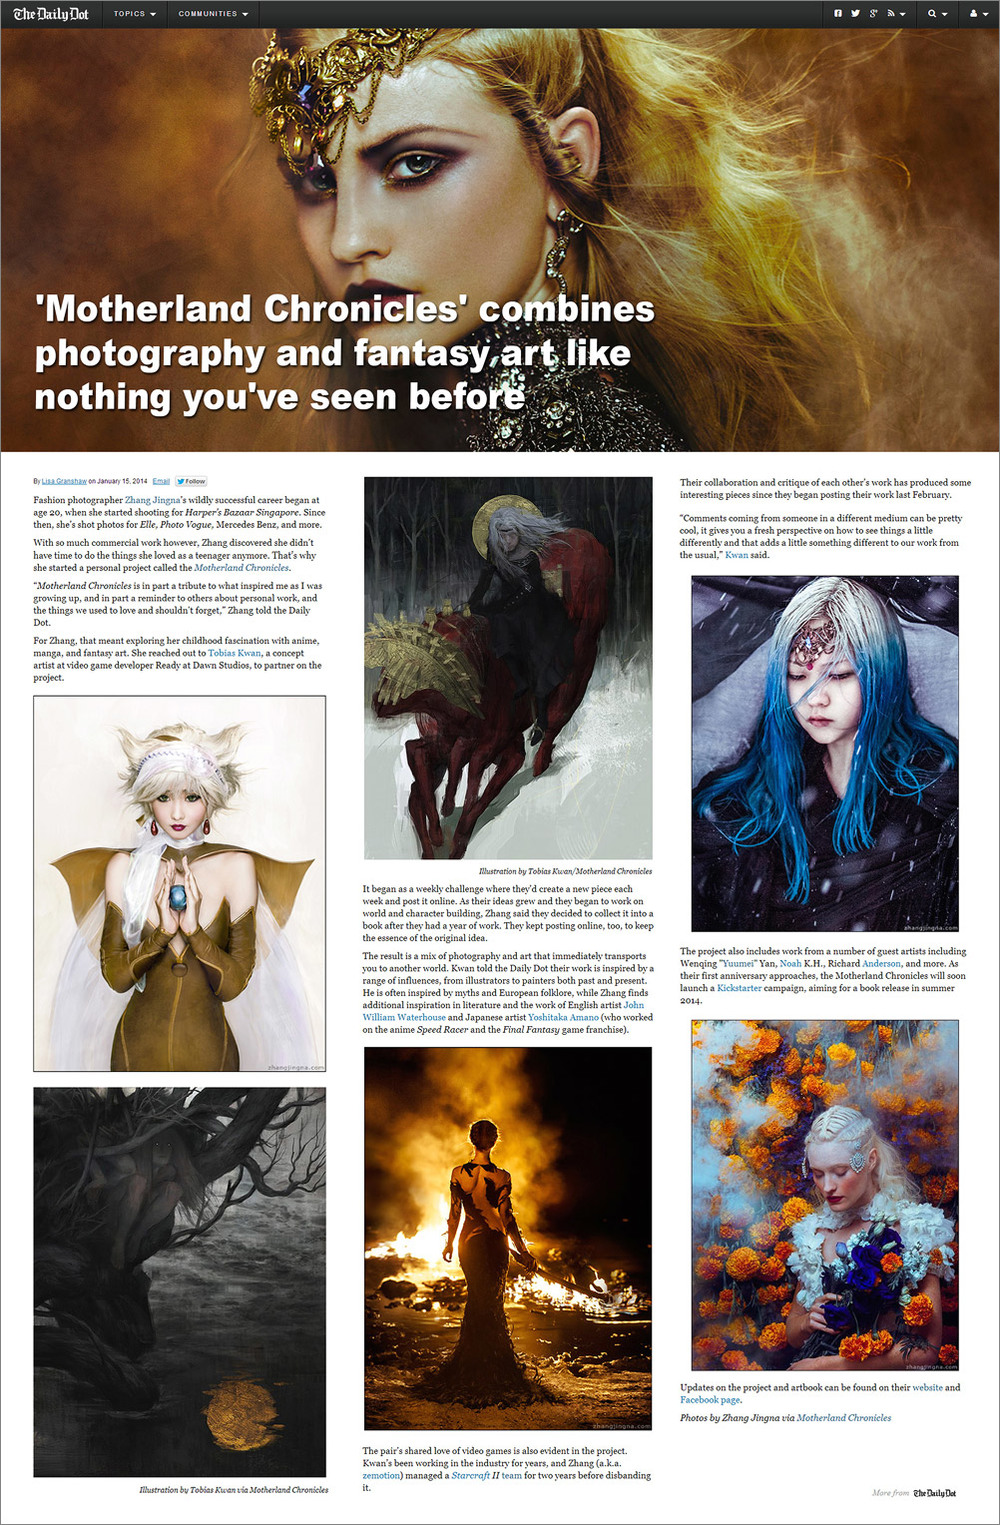 """'Motherland Chronicles' combines photography and fantasy art like nothing you've seen before"",  The Daily Dot,  15 January 2014"